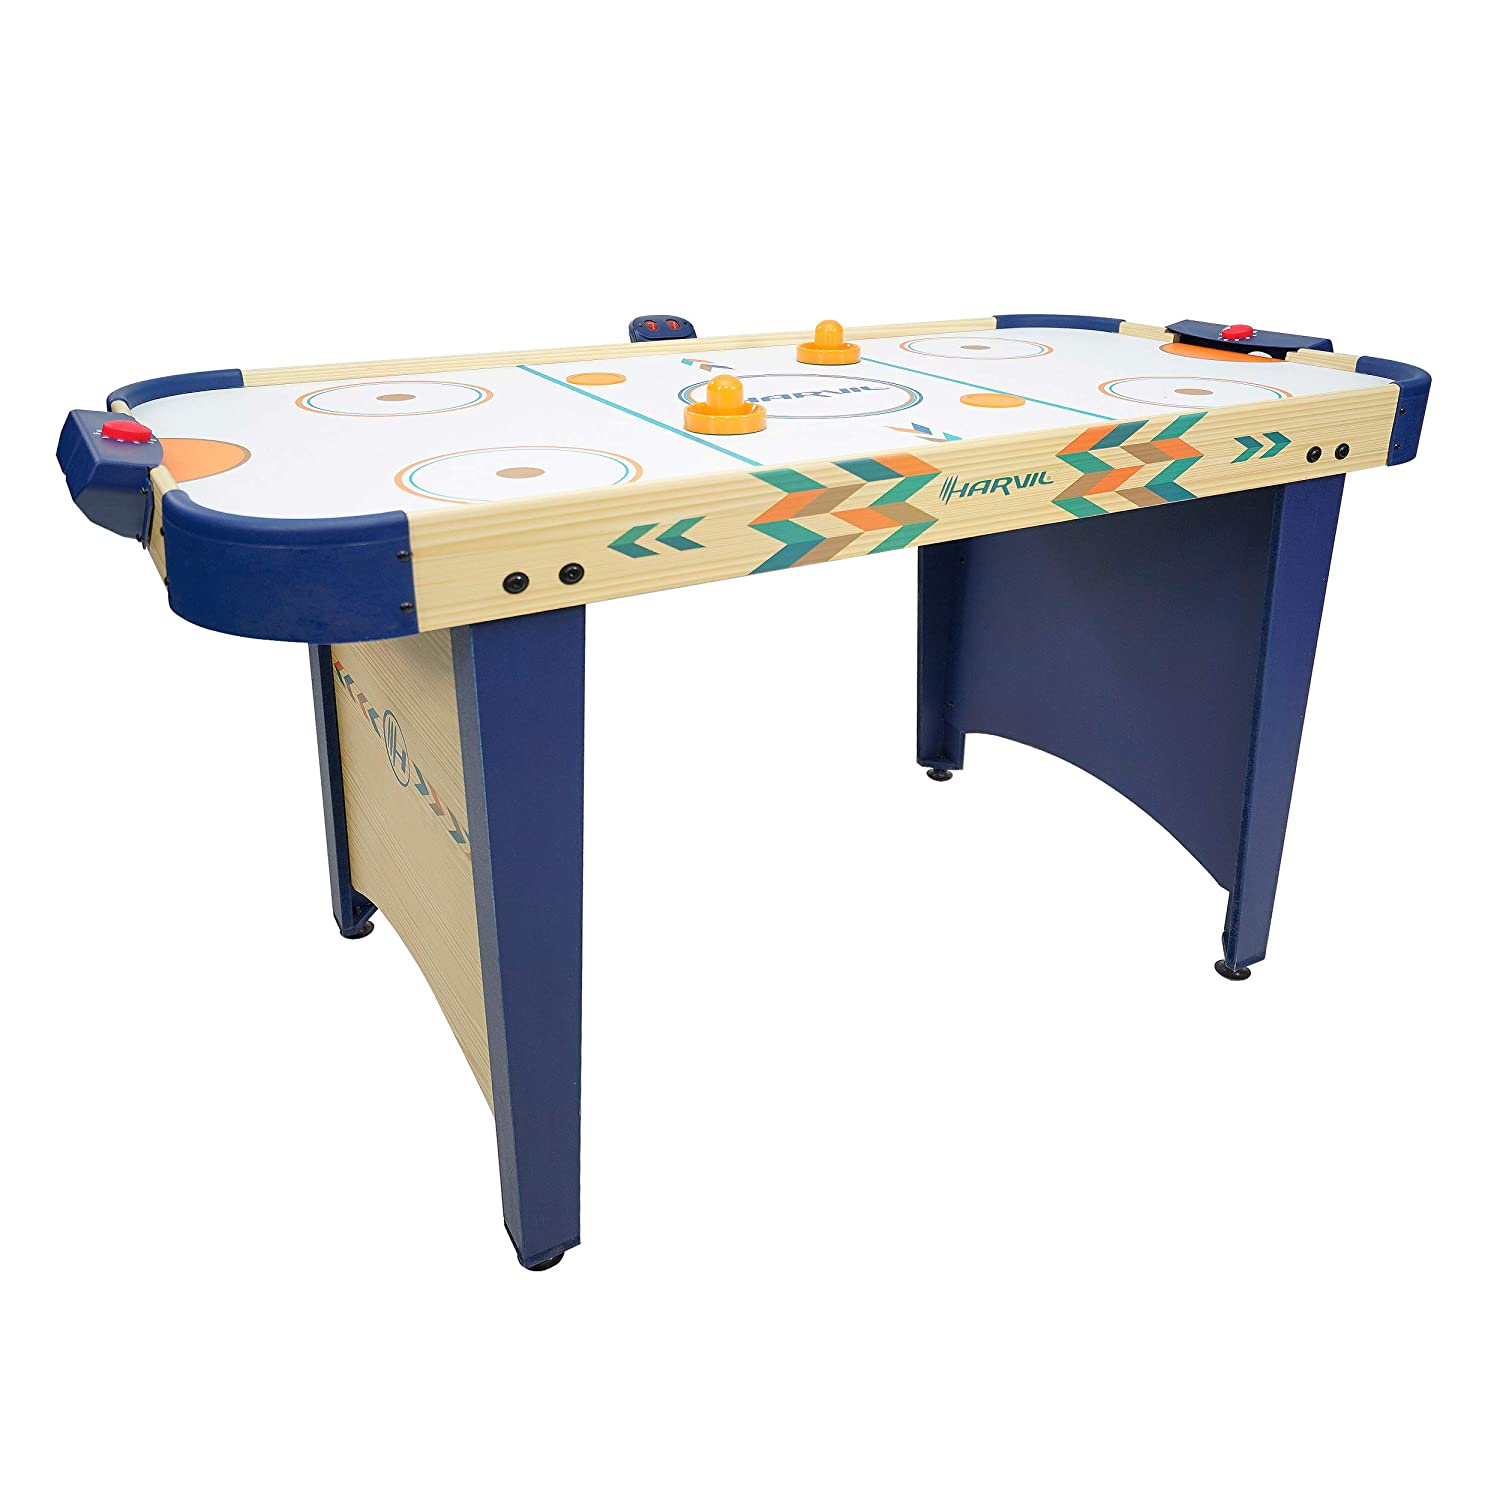 Harvil 4 Foot Air Hockey Game Table for Kids and Adults with Electronic Scorer, Free Pushers and Pucks